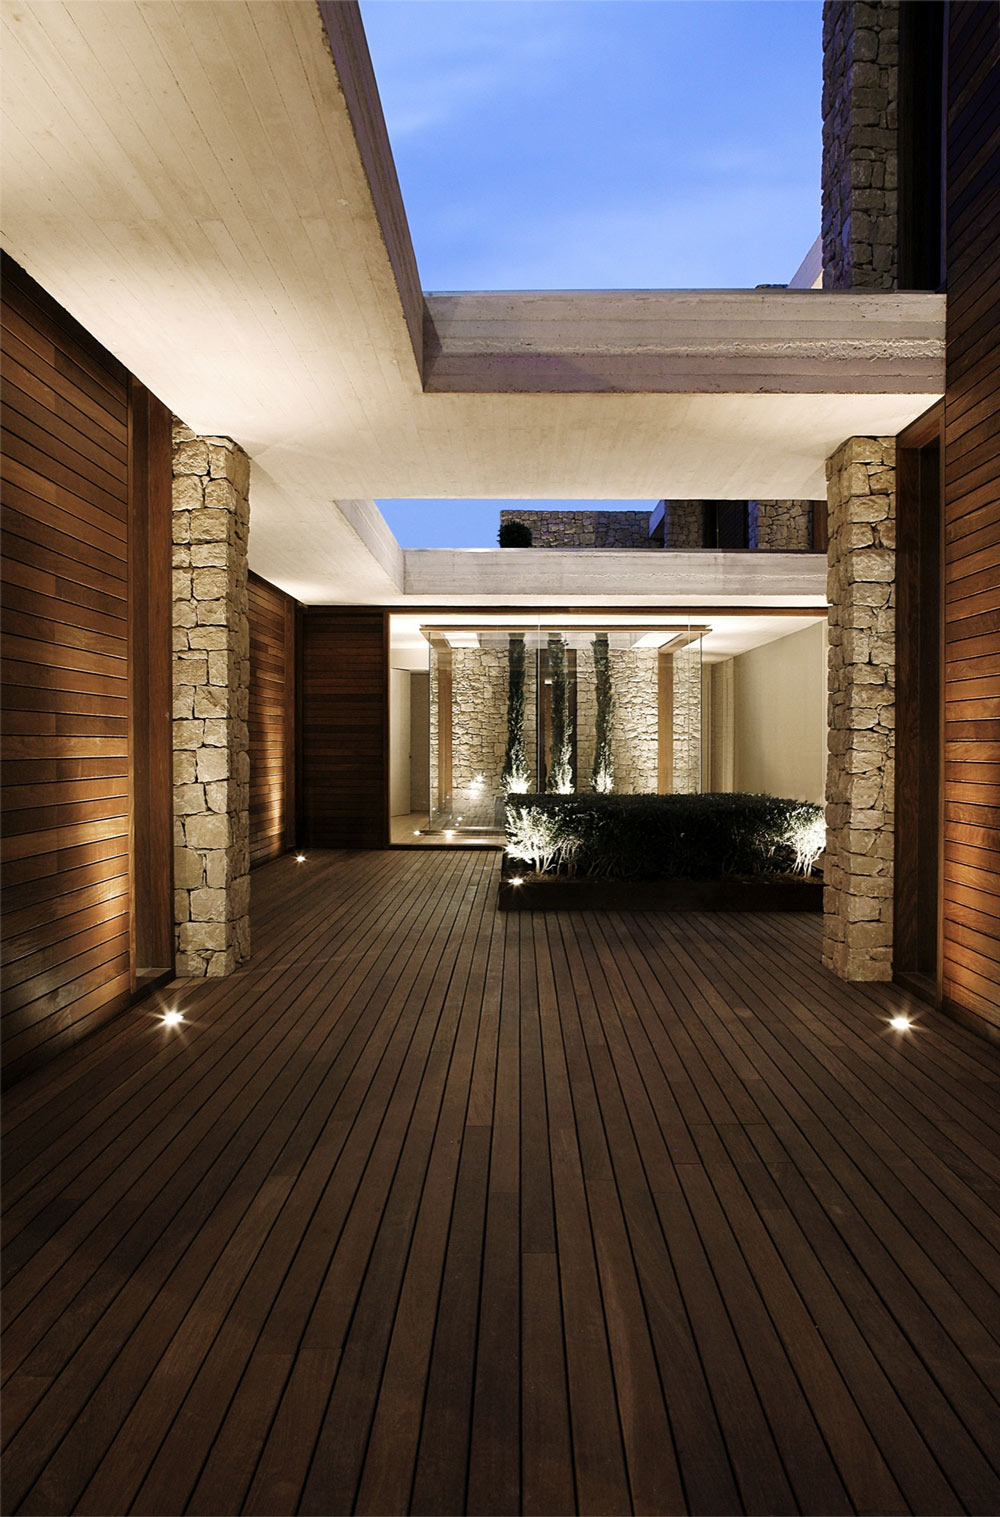 Courtyard, Lighting, Contemporary Home in Monasterios, Spain